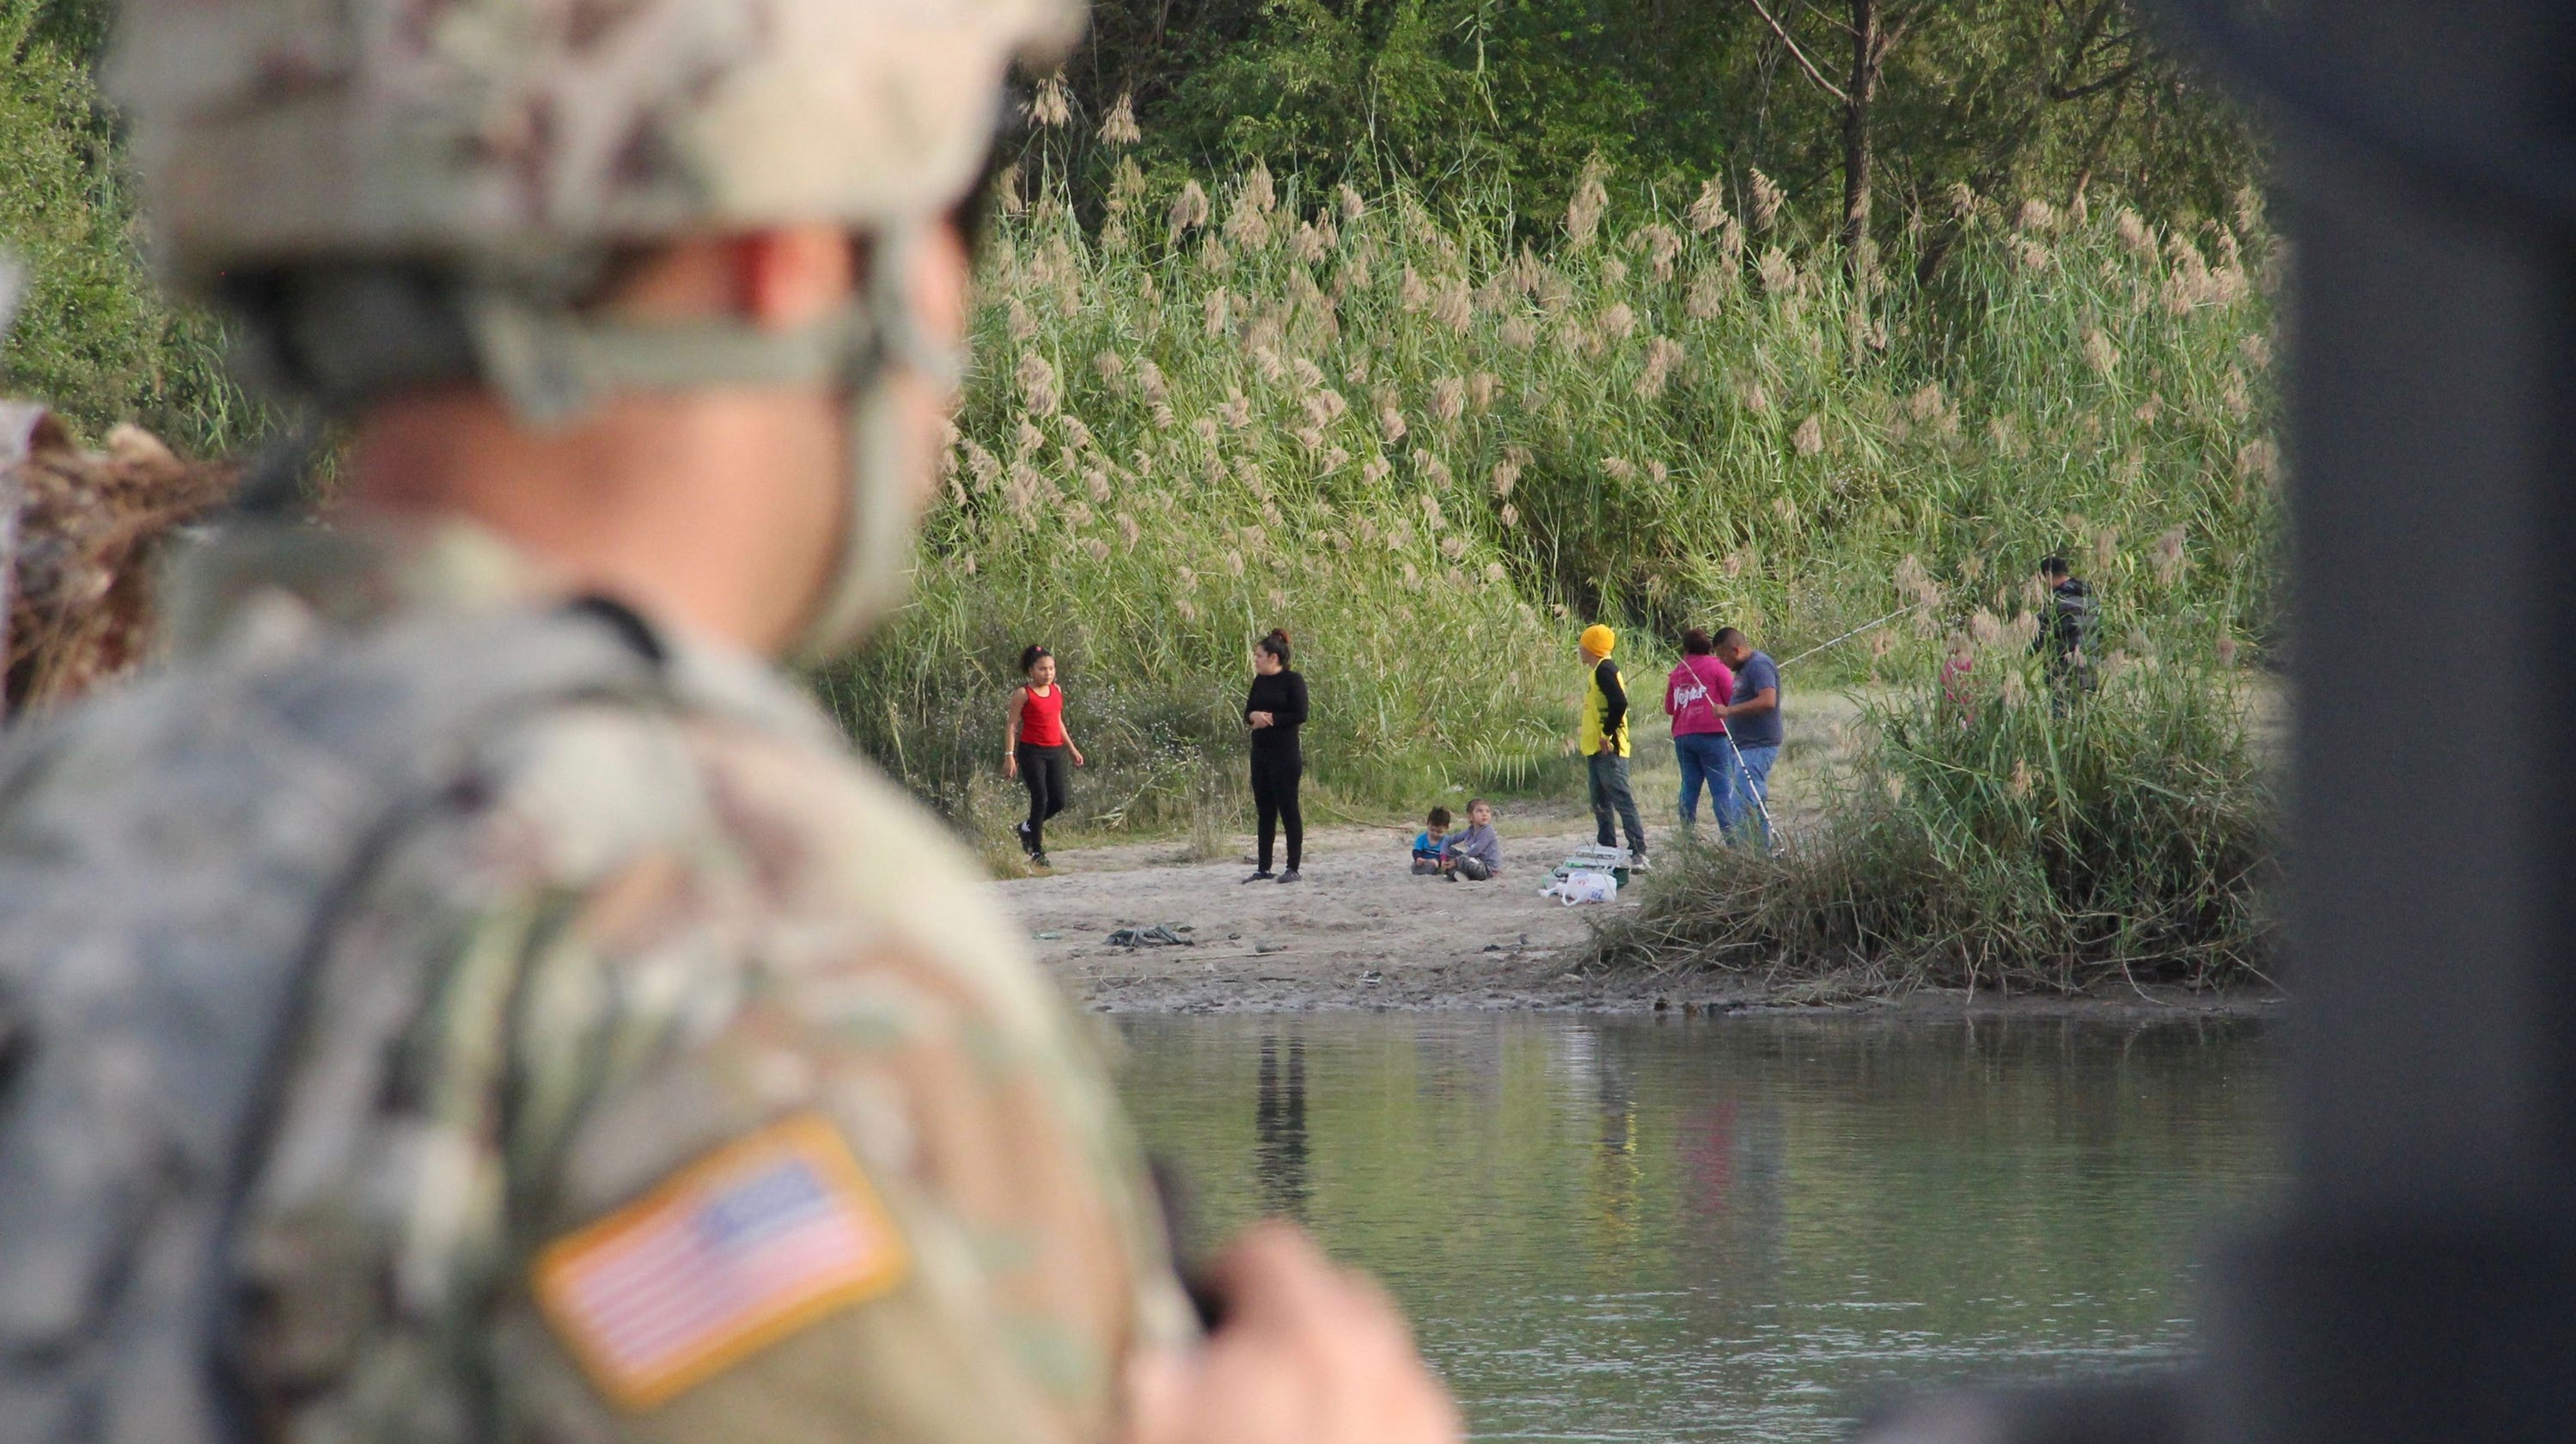 White House Approves Military To Use Lethal Force At Border